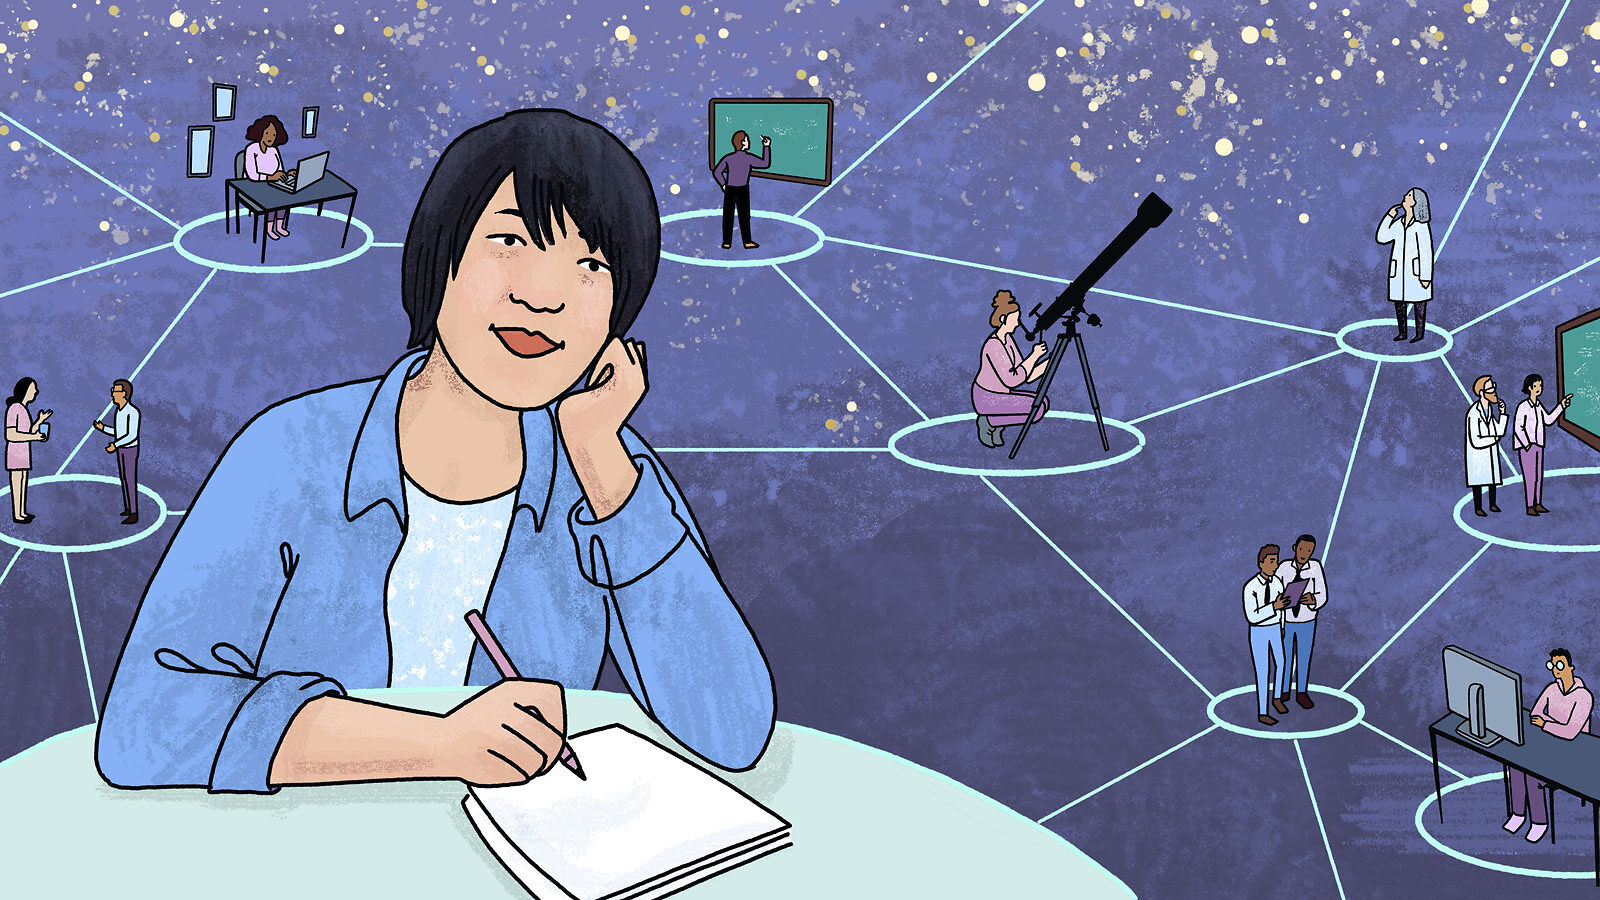 Illustration of Sal Fu She is shown as part of a connected network of scientists working on various projects